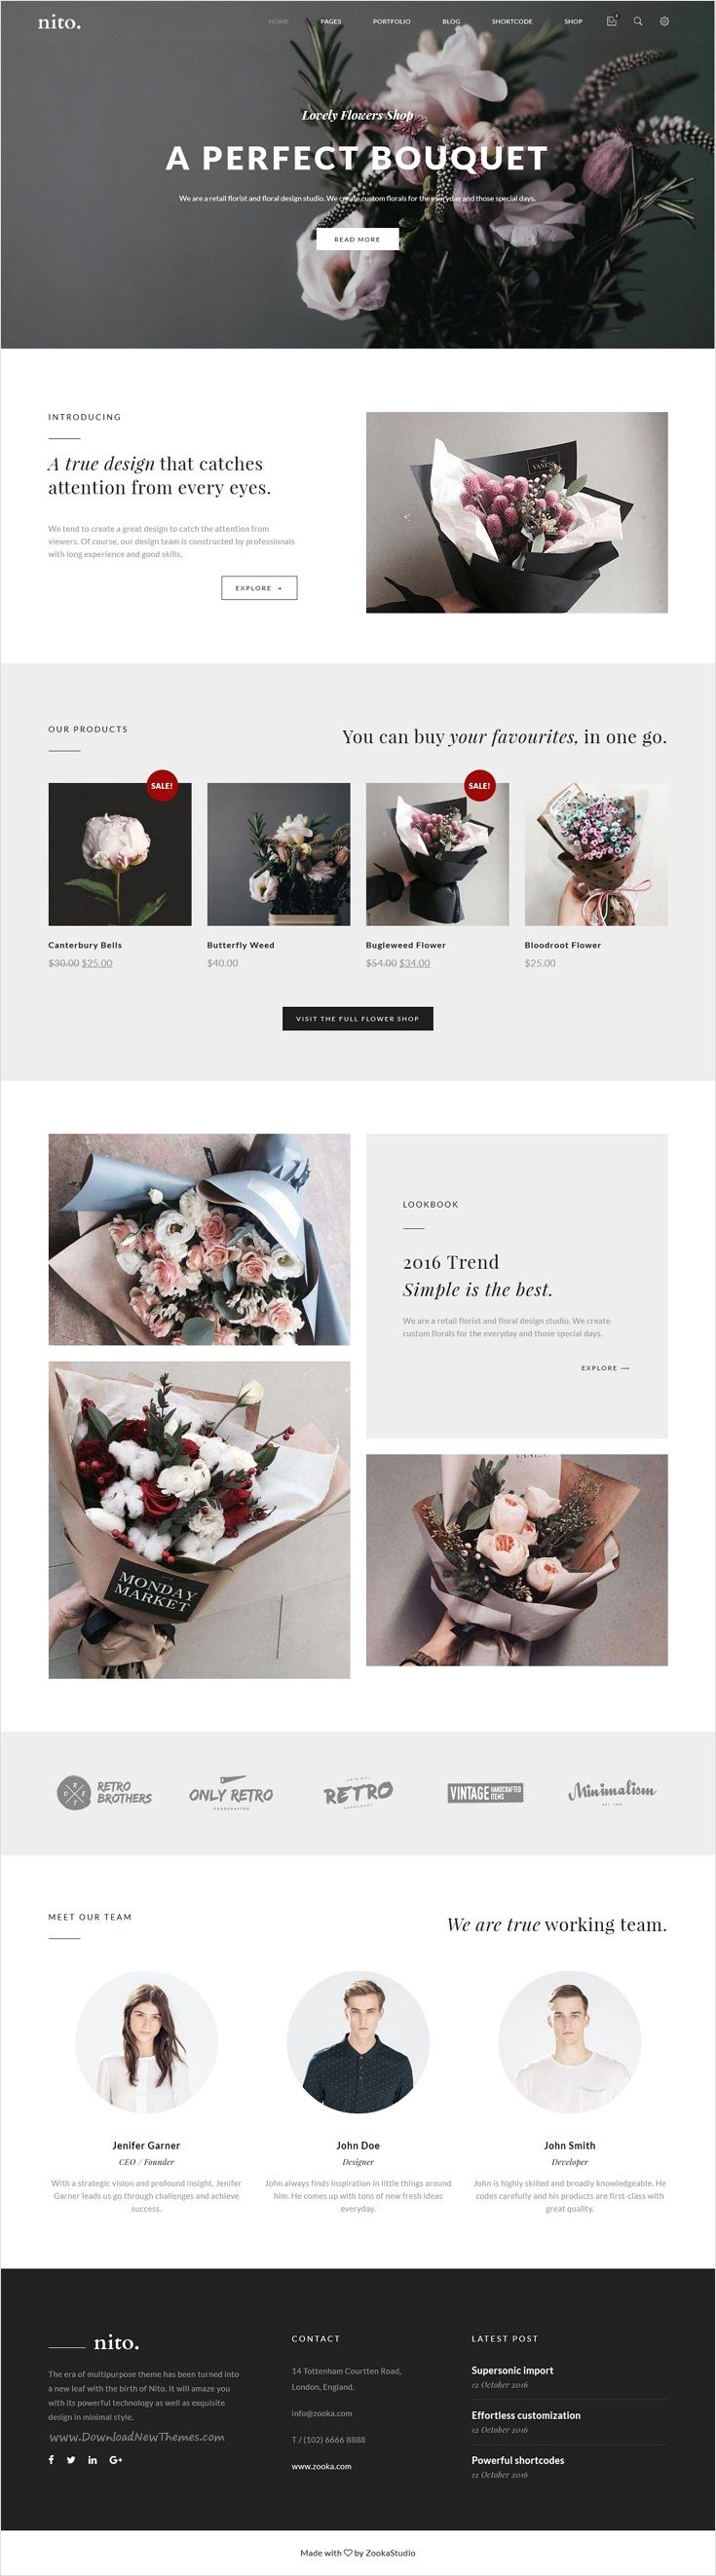 Nito is a clean and minimal multipurpose #WordPress theme for stunning #flower #shop website with 21+ unique homepage layouts download now➩ https://themeforest.net/item/nito-a-clean-minimal-multipurpose-wordpress-theme/17897172?ref=Datasata http://ecommerce.jrstudioweb.com/